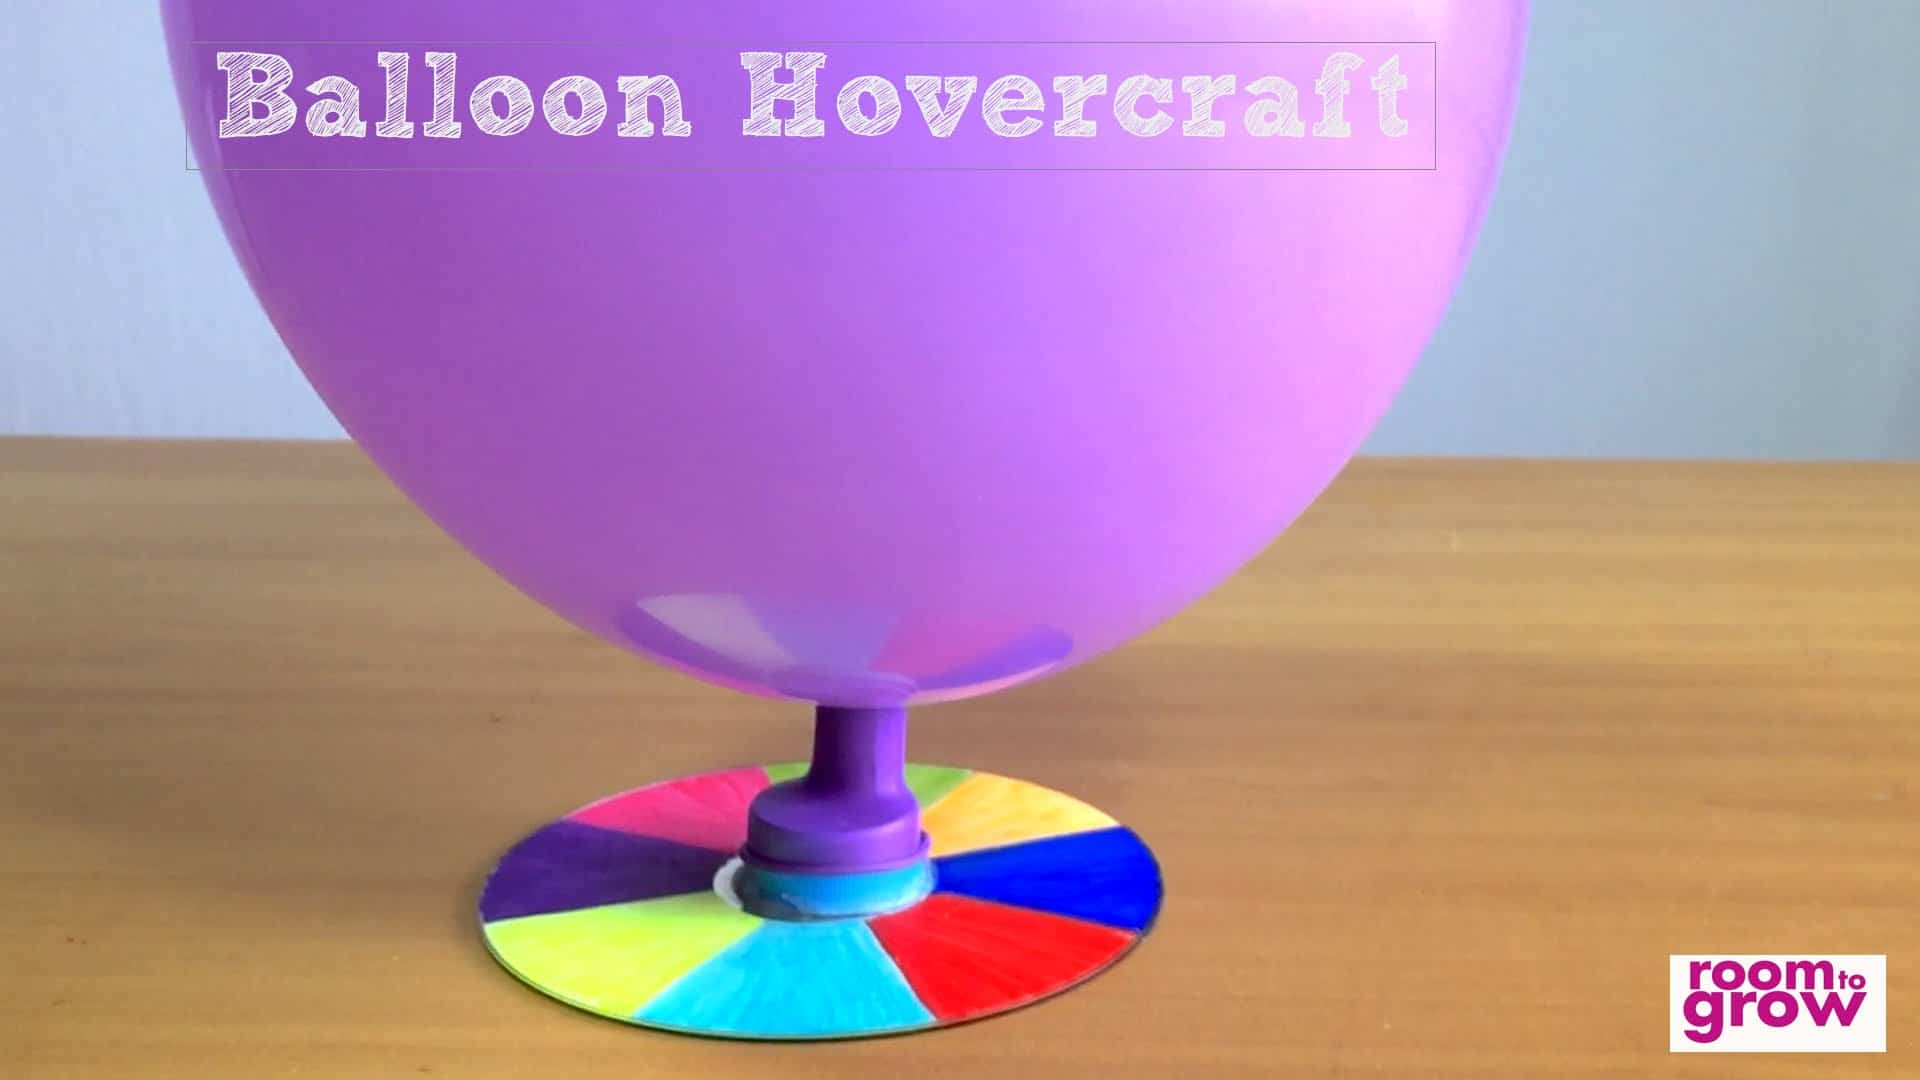 Balloon hover craft